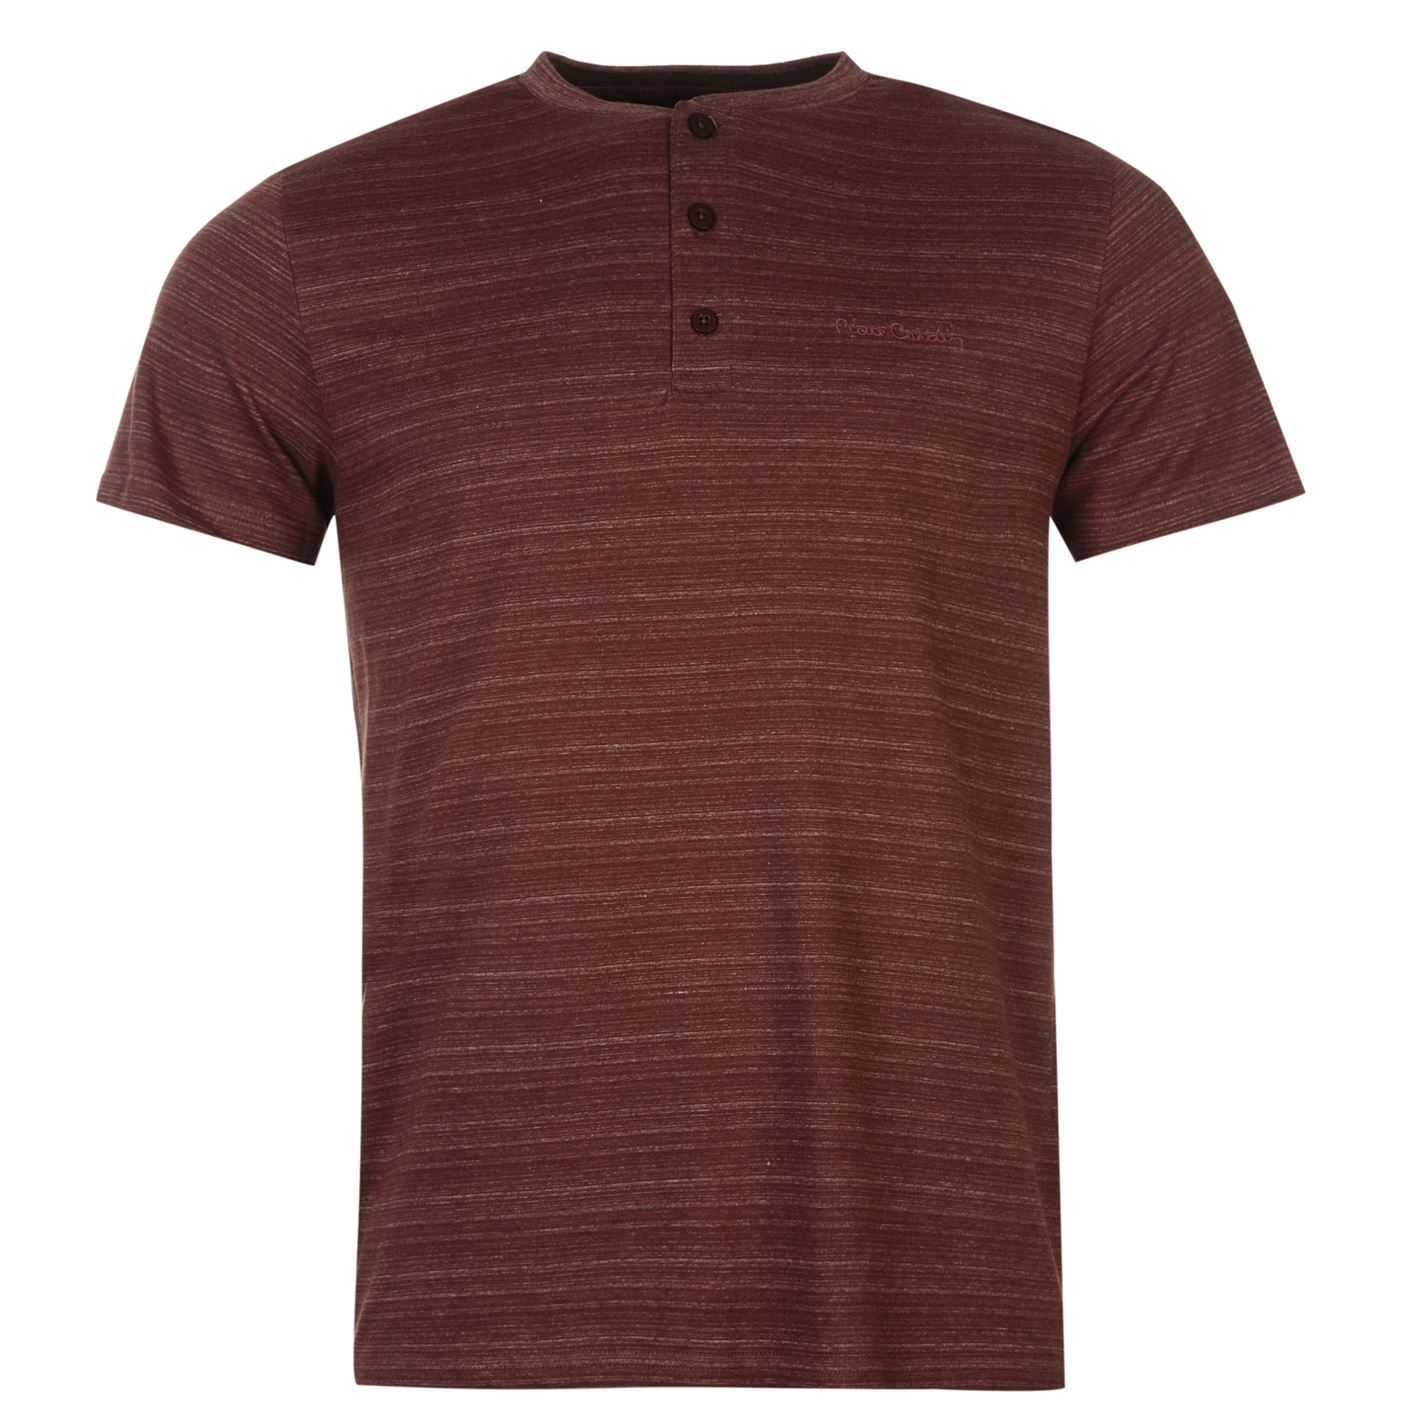 pierre cardin henley t shirt mens burgundy top tee shirt. Black Bedroom Furniture Sets. Home Design Ideas